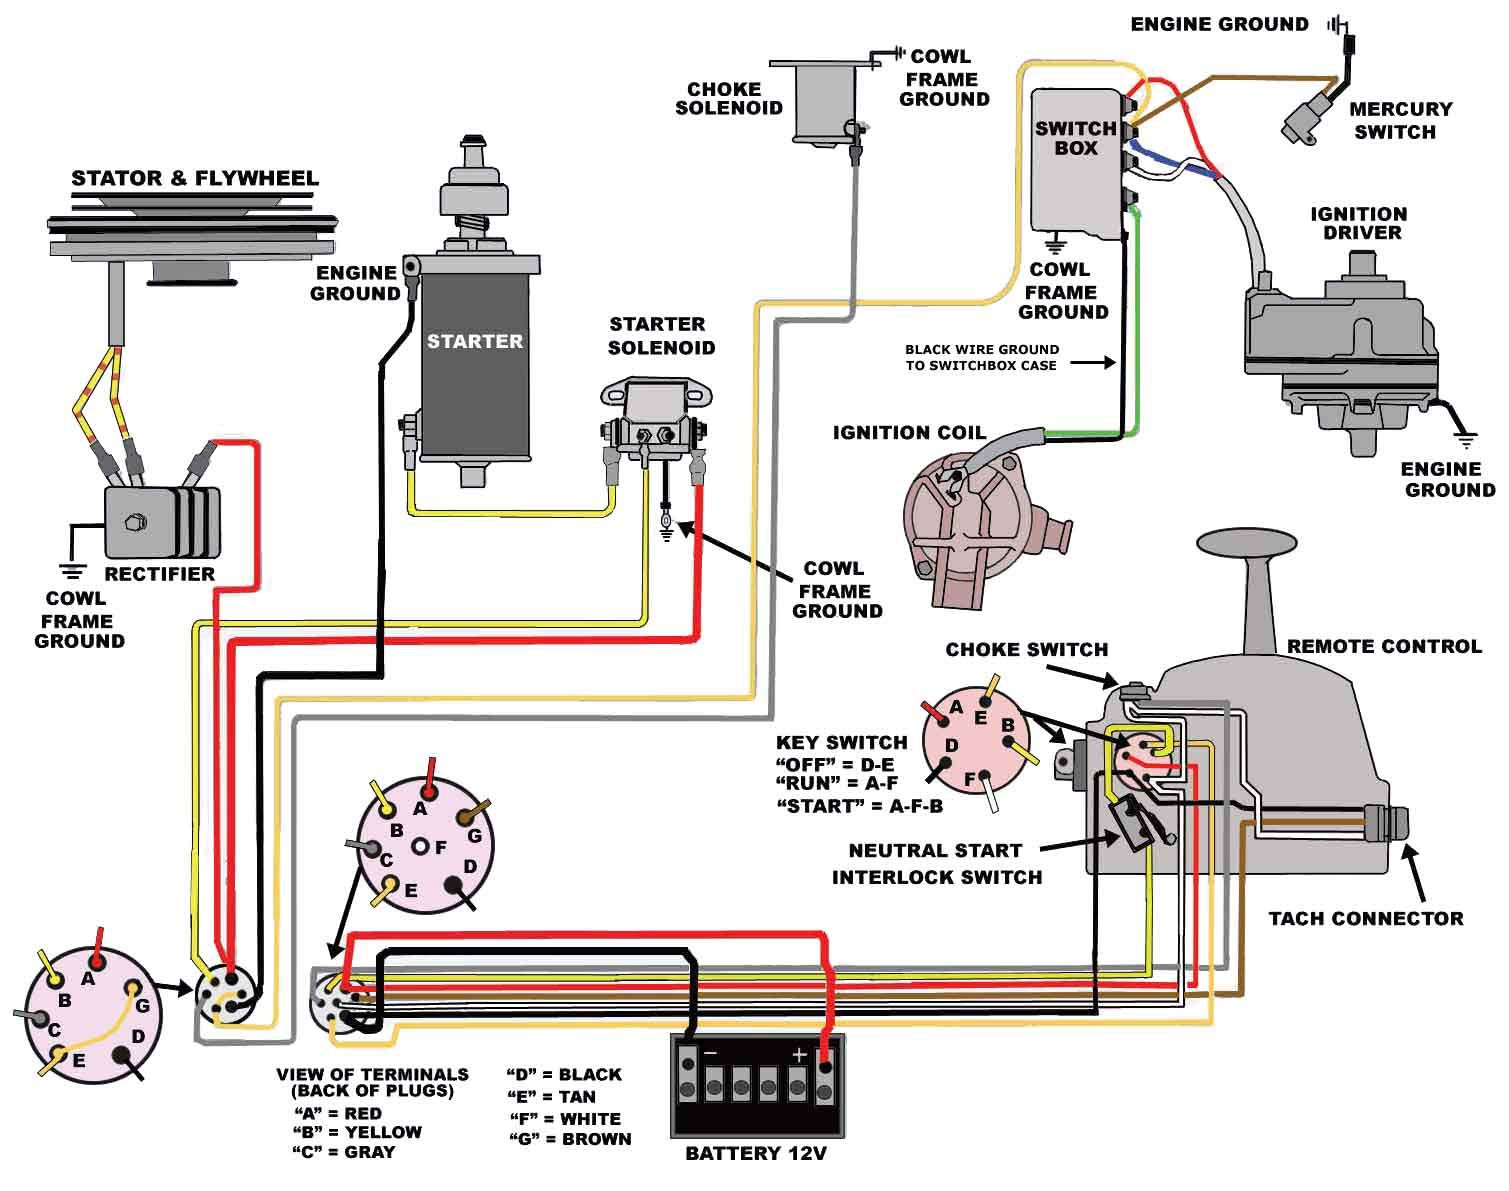 Cute Boiler Diagram Tall Three Way Switch Guitar Regular Free Technical Service Bulletins Online One Humbucker One Volume Wiring Old Ibanez Srx Bass PinkDimarzio Push Pull 430CC) INTERNATIONAL | PerfProTech